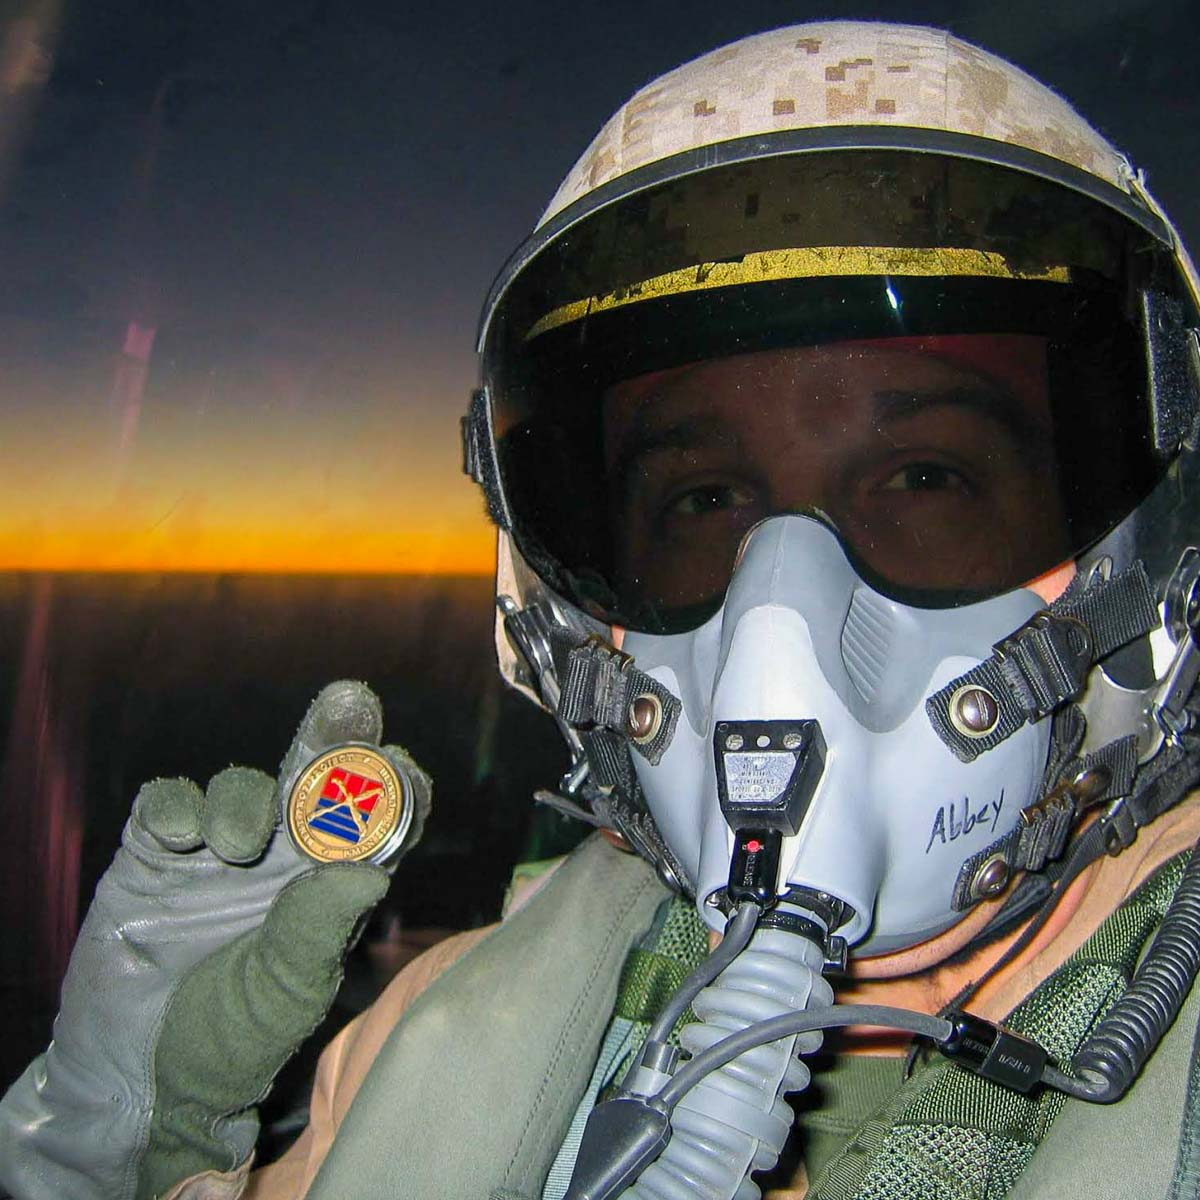 Derek Abbey, Ph.D., flying in an F-18